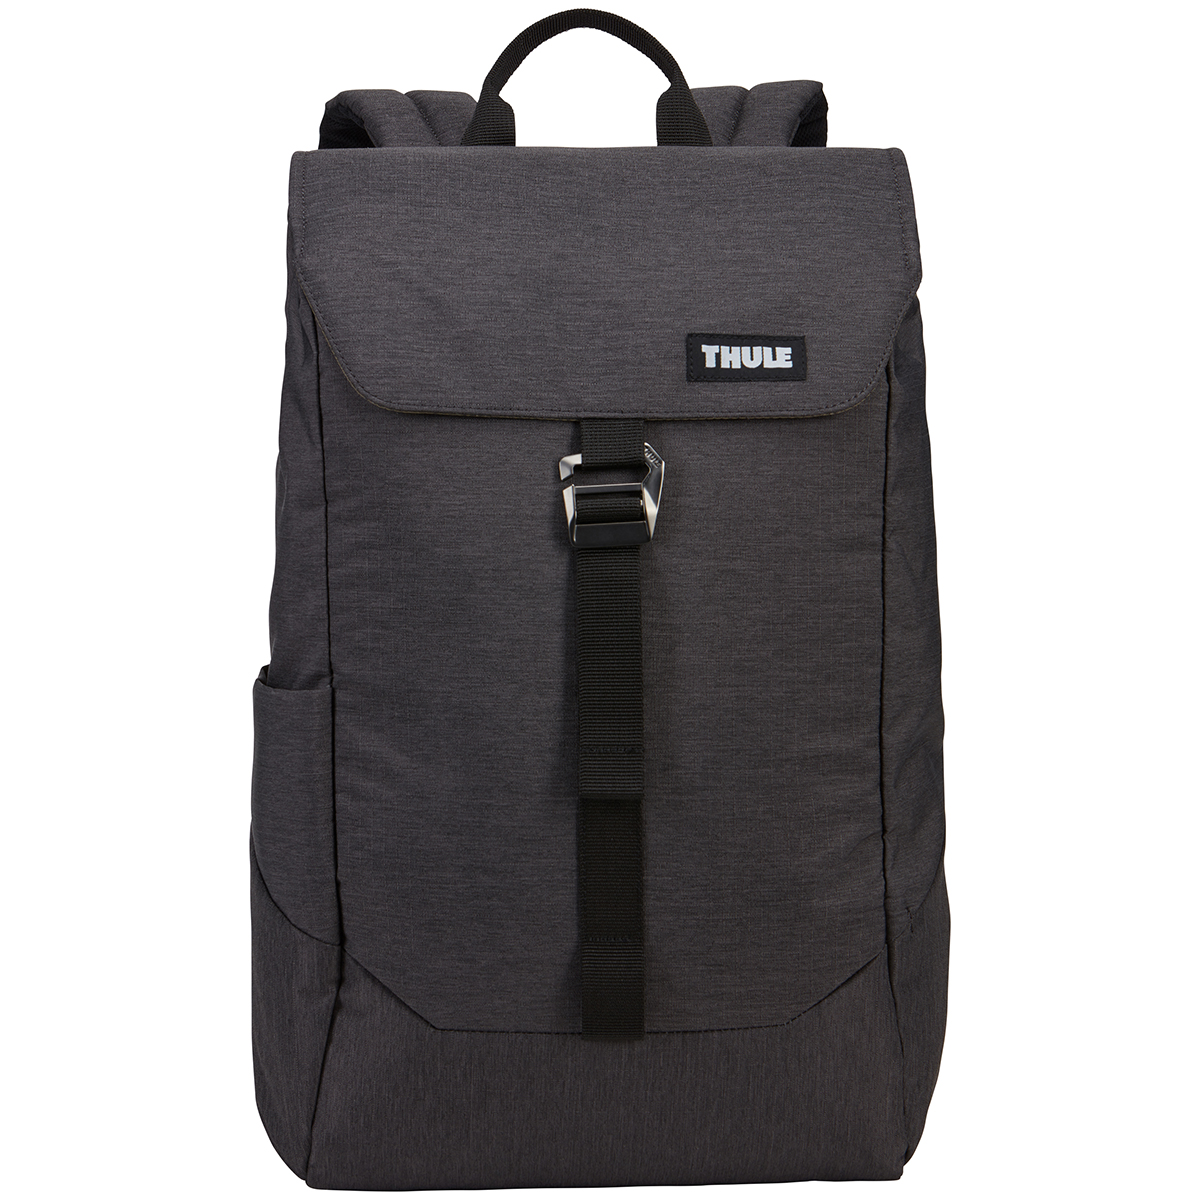 Thule Lithos 16L Rucksack Backpack Notebook Tablet Black von Thule